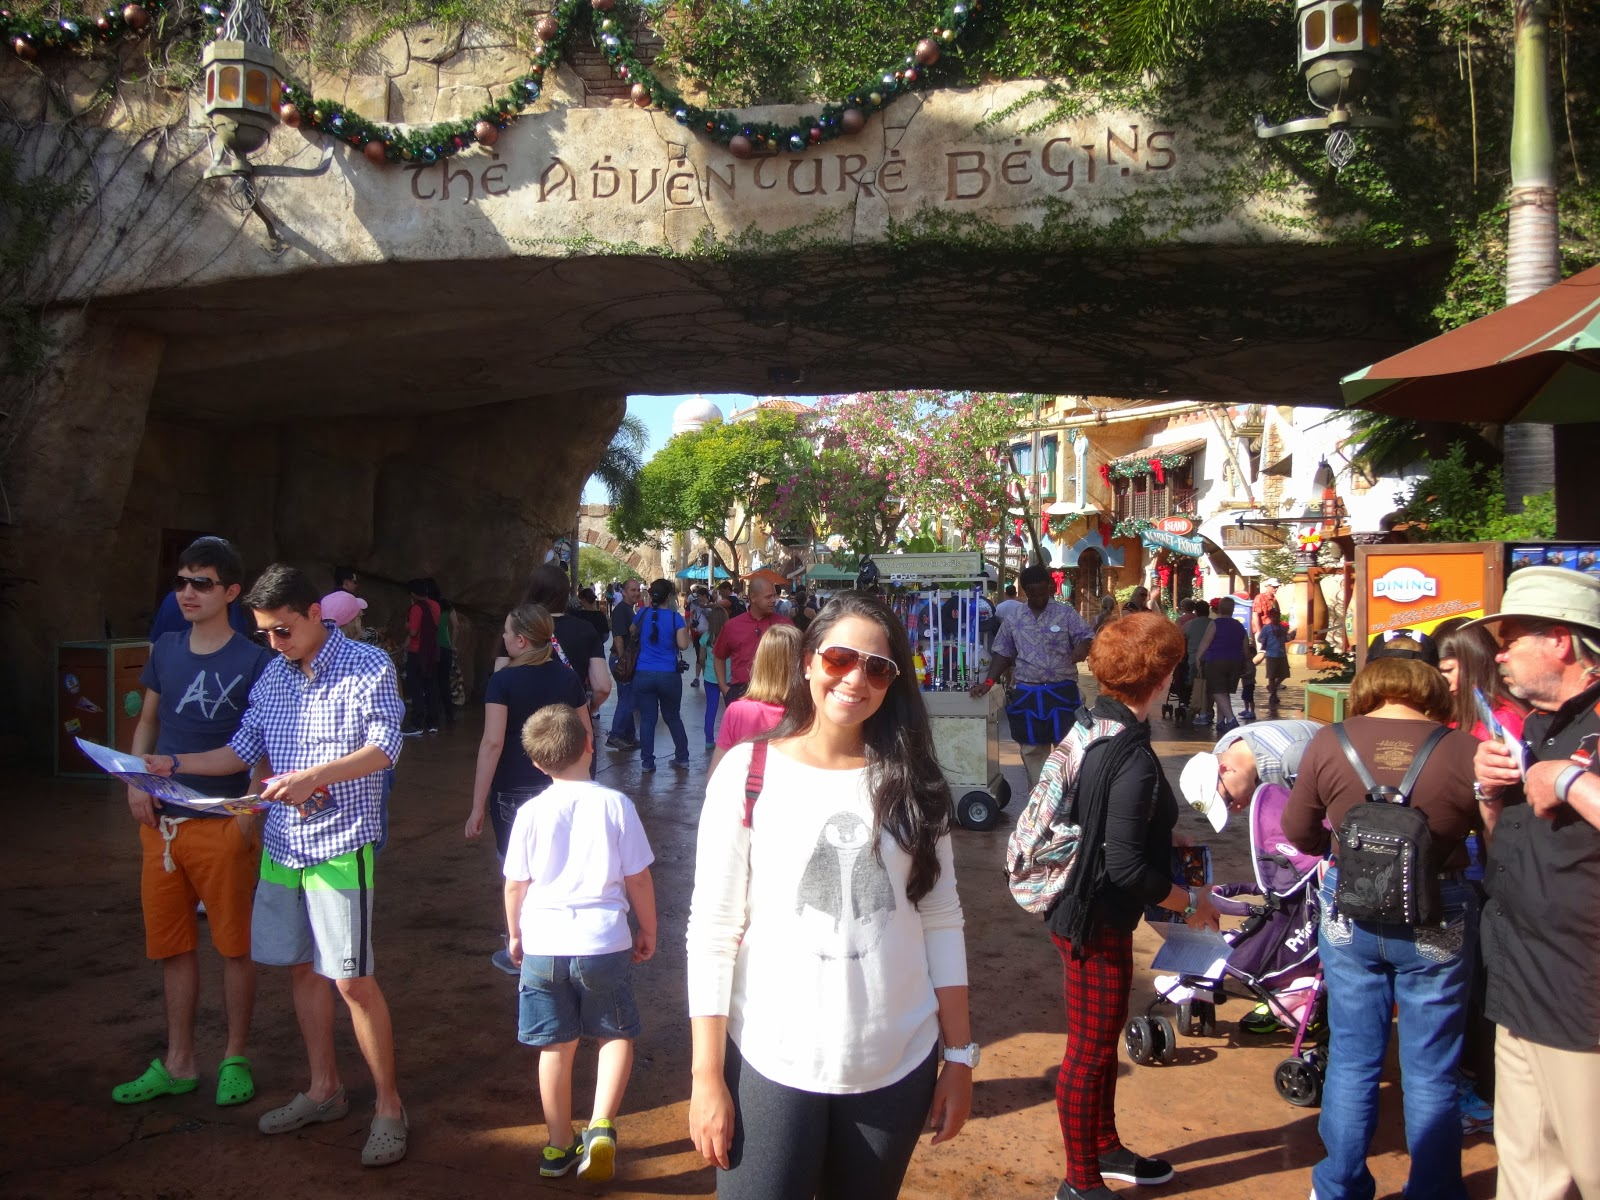 island of adventure - orlando, estados unidos